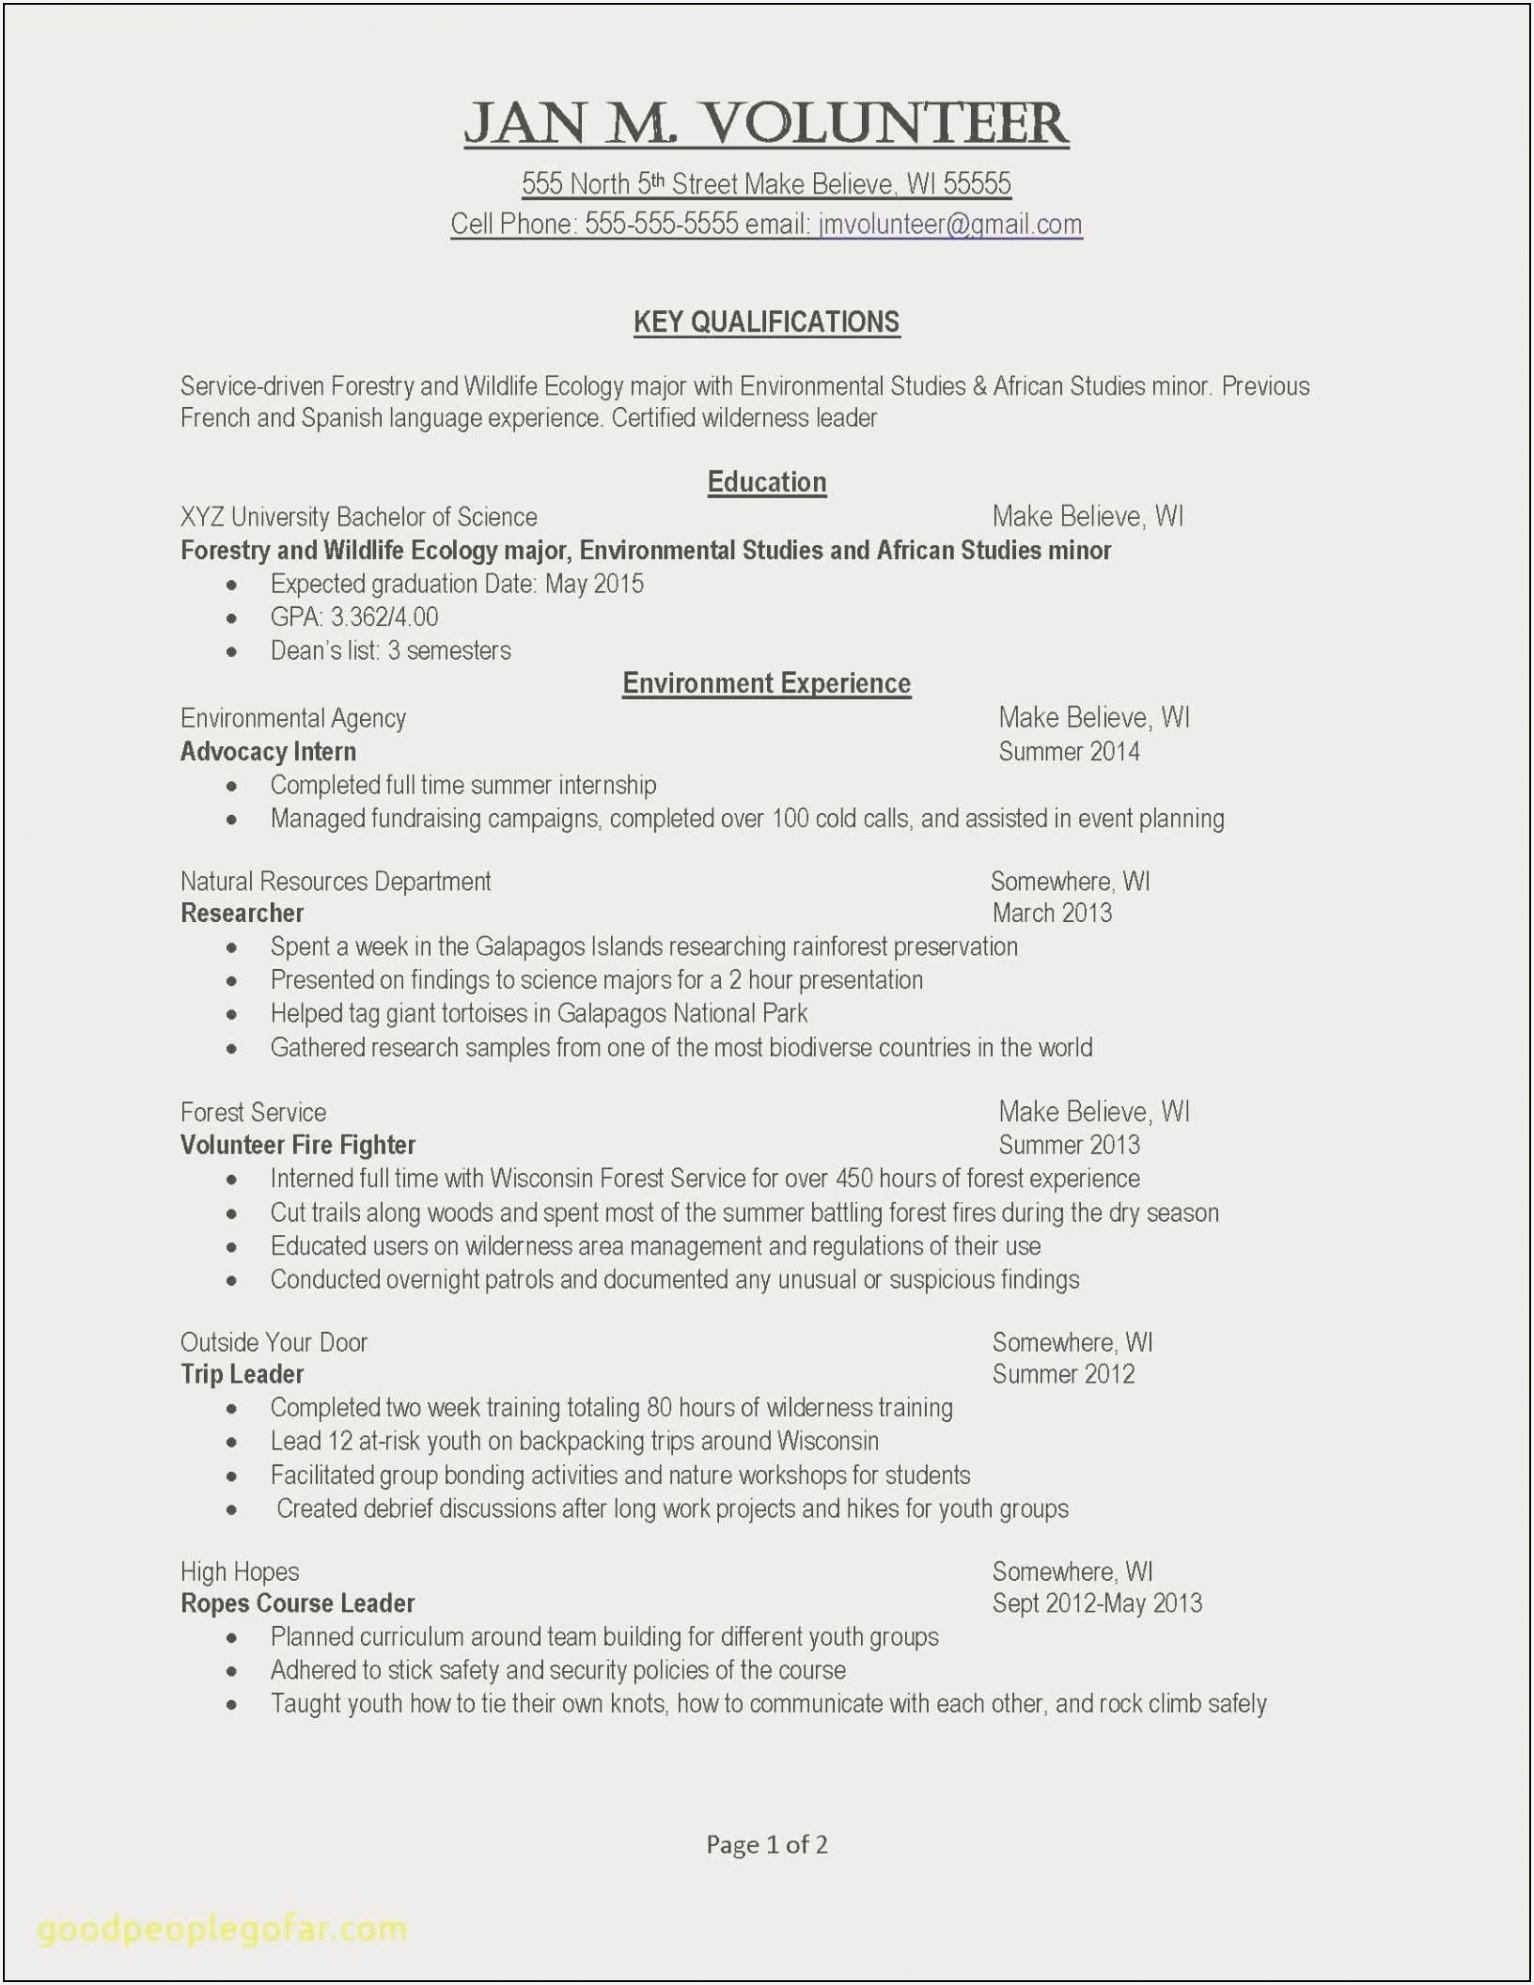 Cover Letter Examples 2016 for Resume New Image Fresh Sample College Application Resume Lovely Painter Resume 19851534znkfz